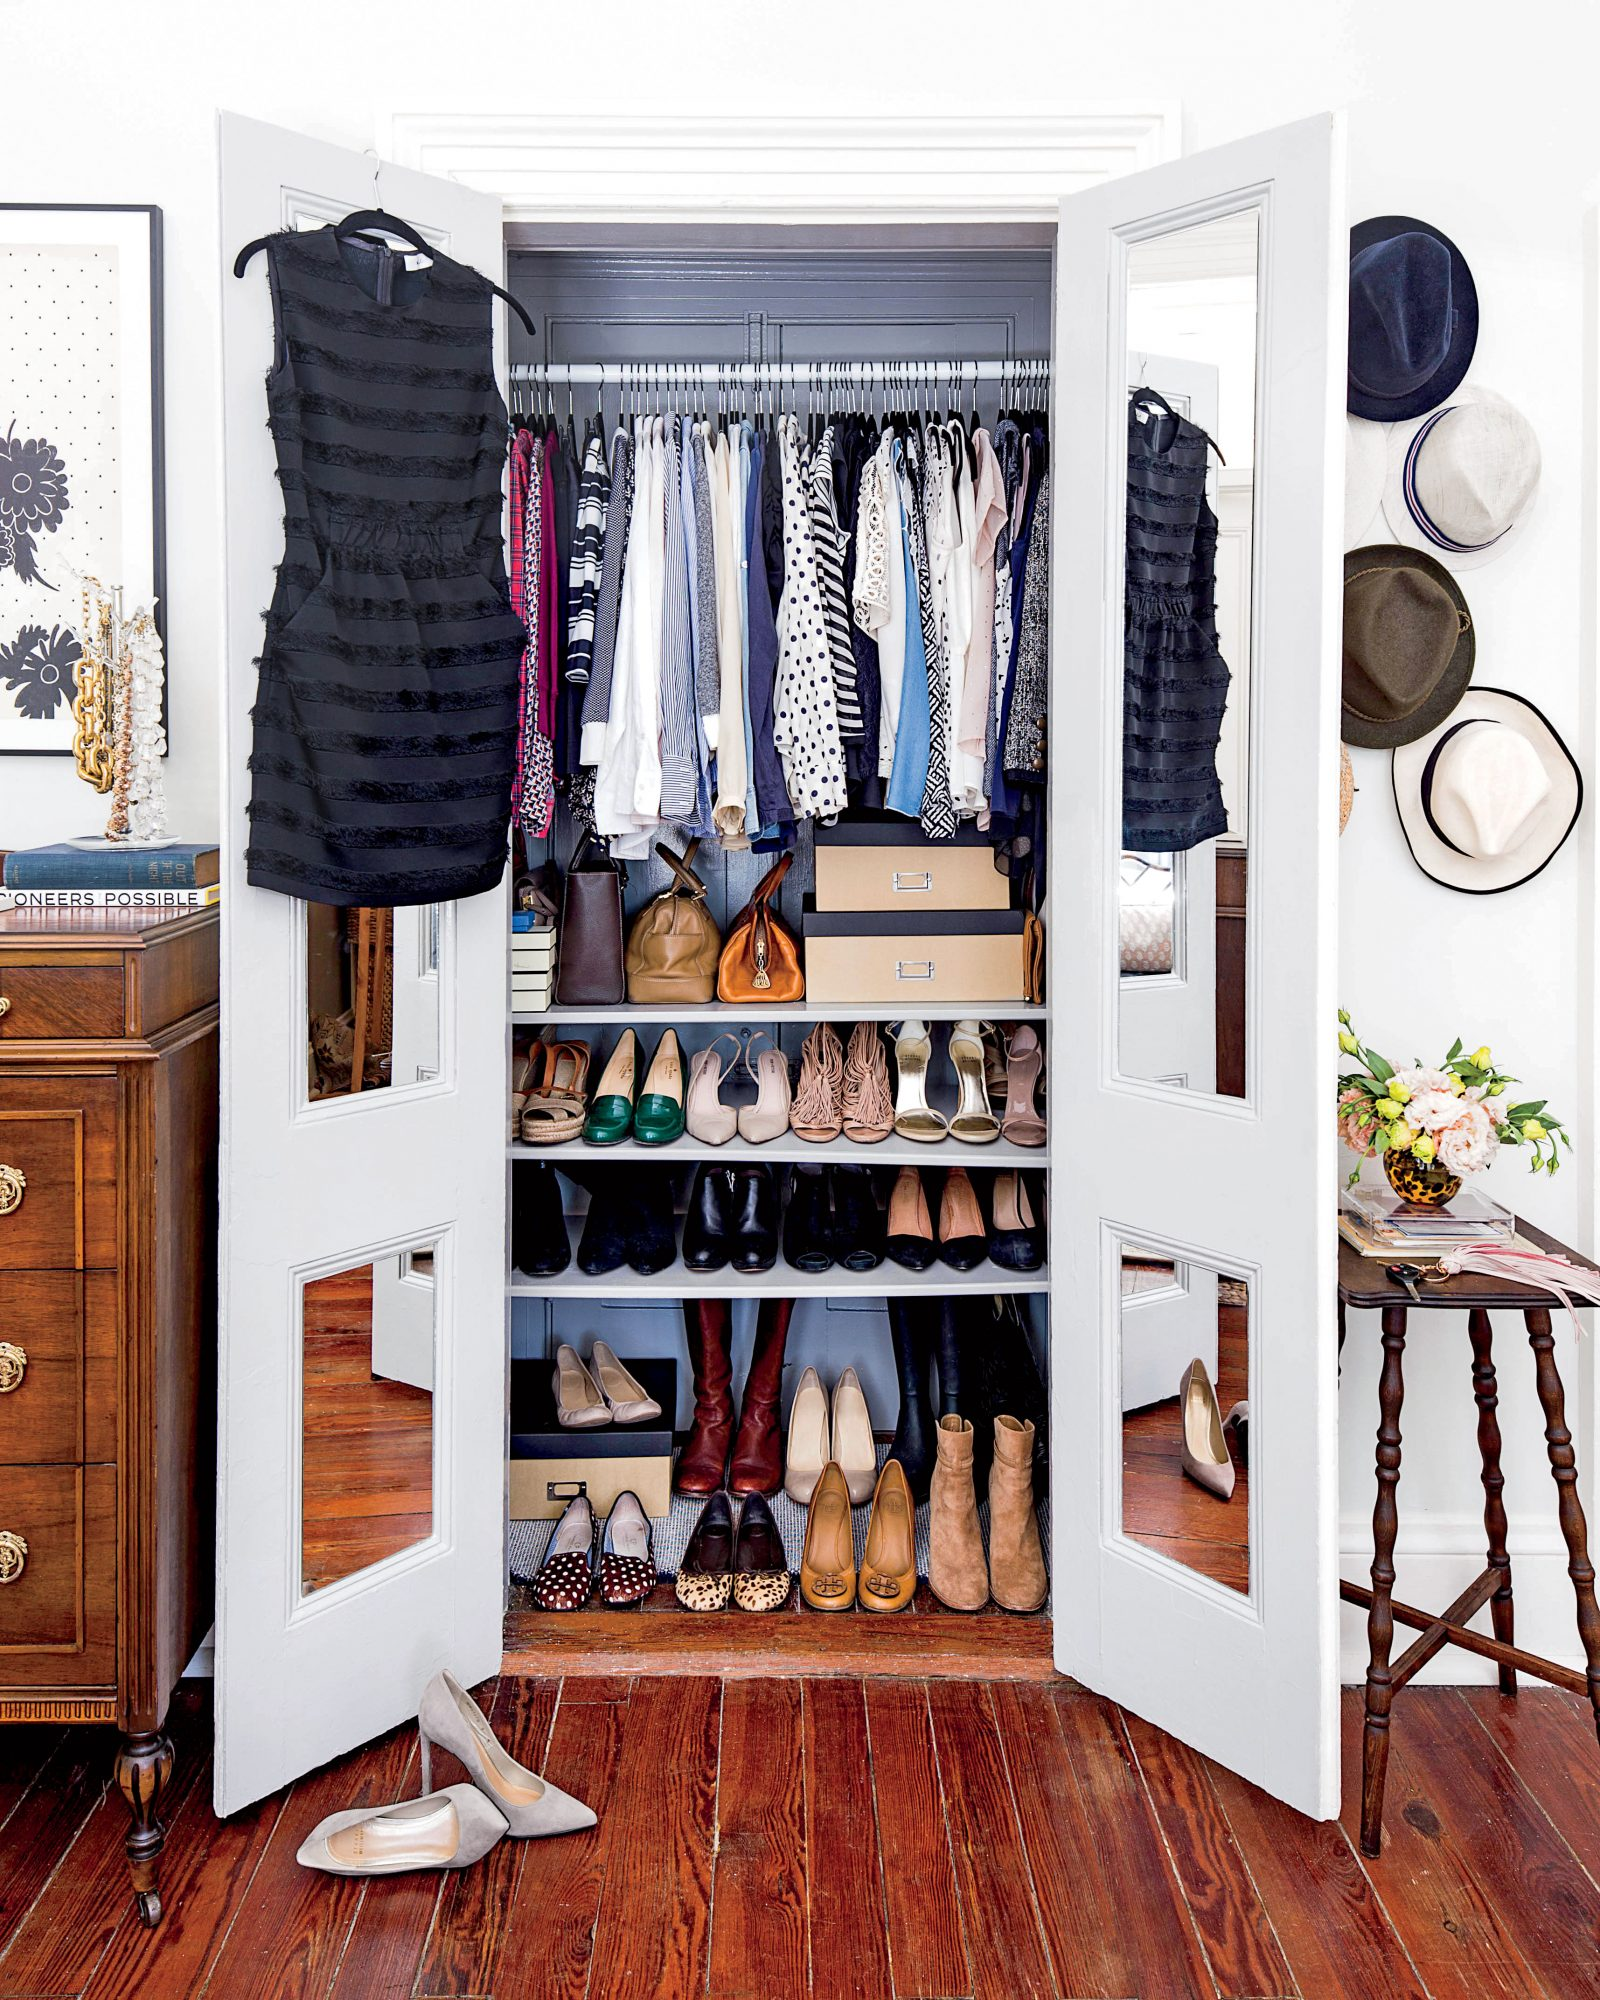 Small apartment closet storage for shoes and tops.